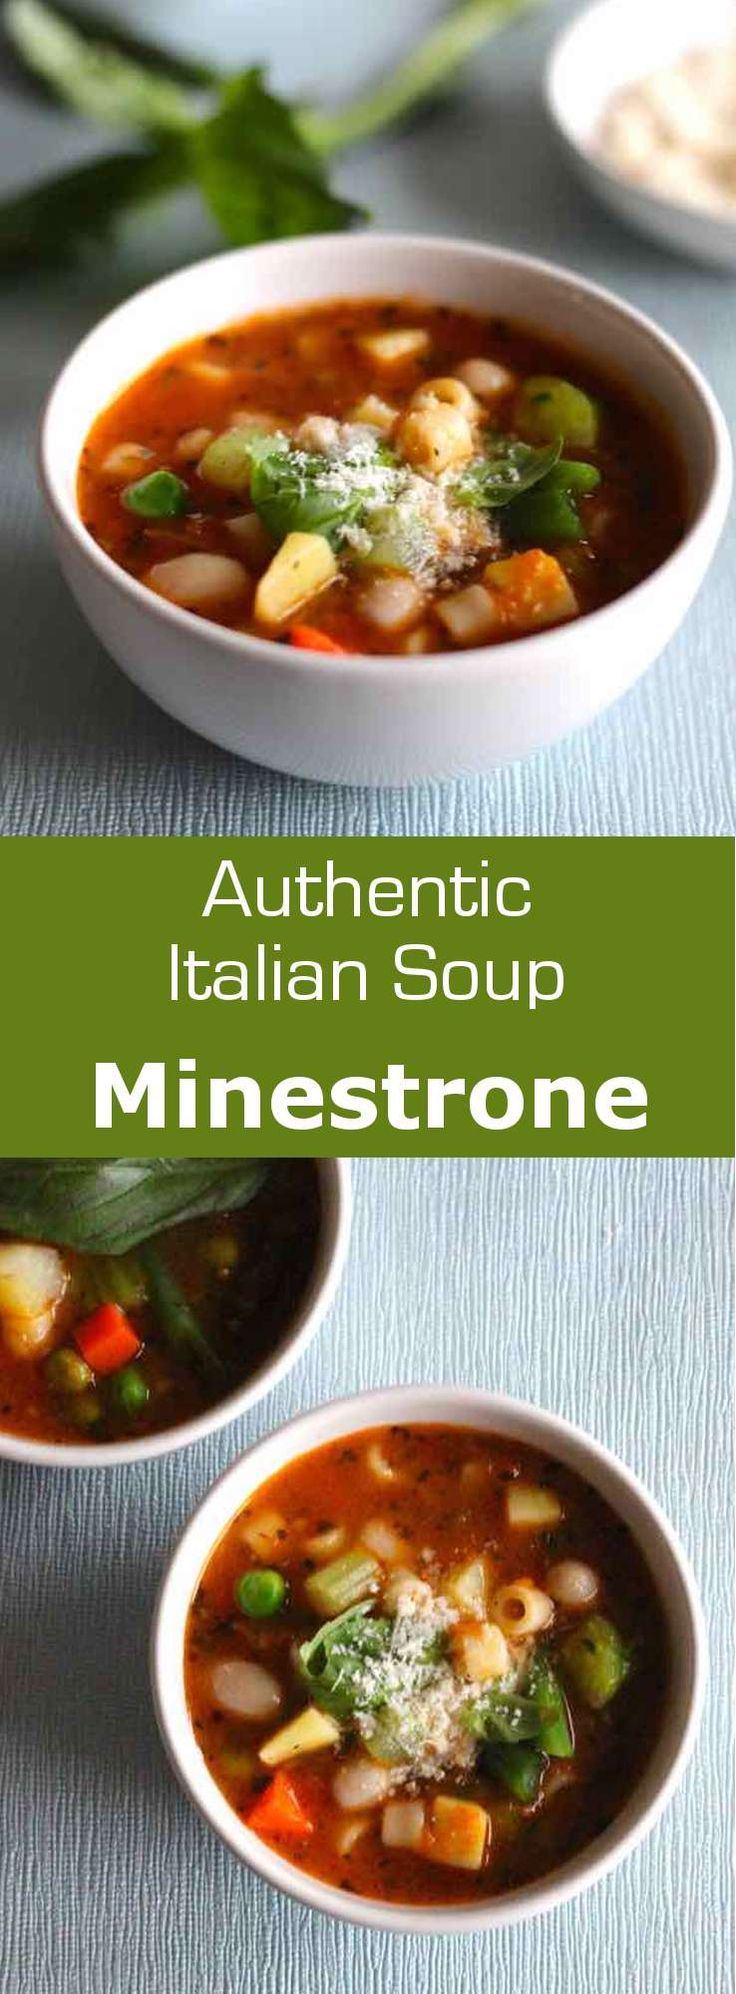 From Italian Minestra Soup Or To Serve Minestrone Refers To A Preparation Of